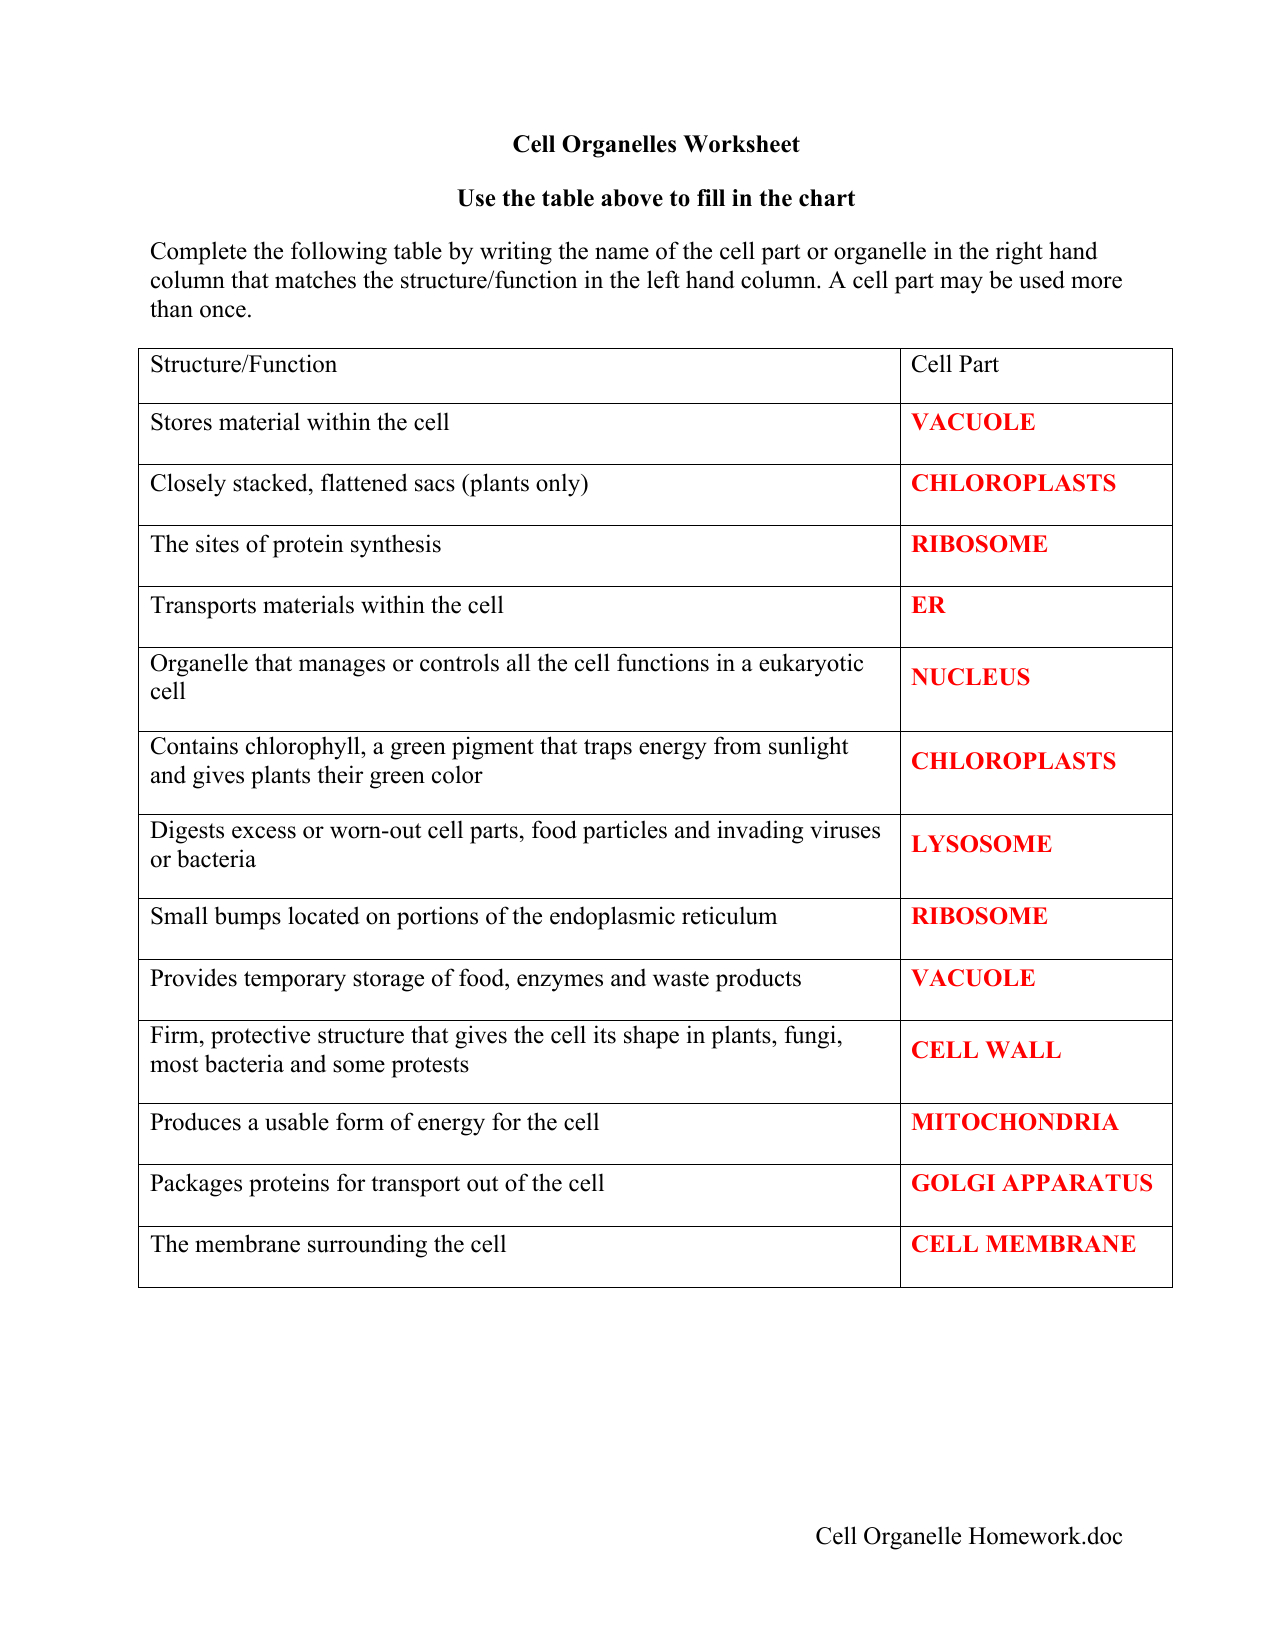 Cell Organelle Homeworkdoc Cell Organelles Worksheet With Regard To Cells And Organelles Worksheet Answer Key